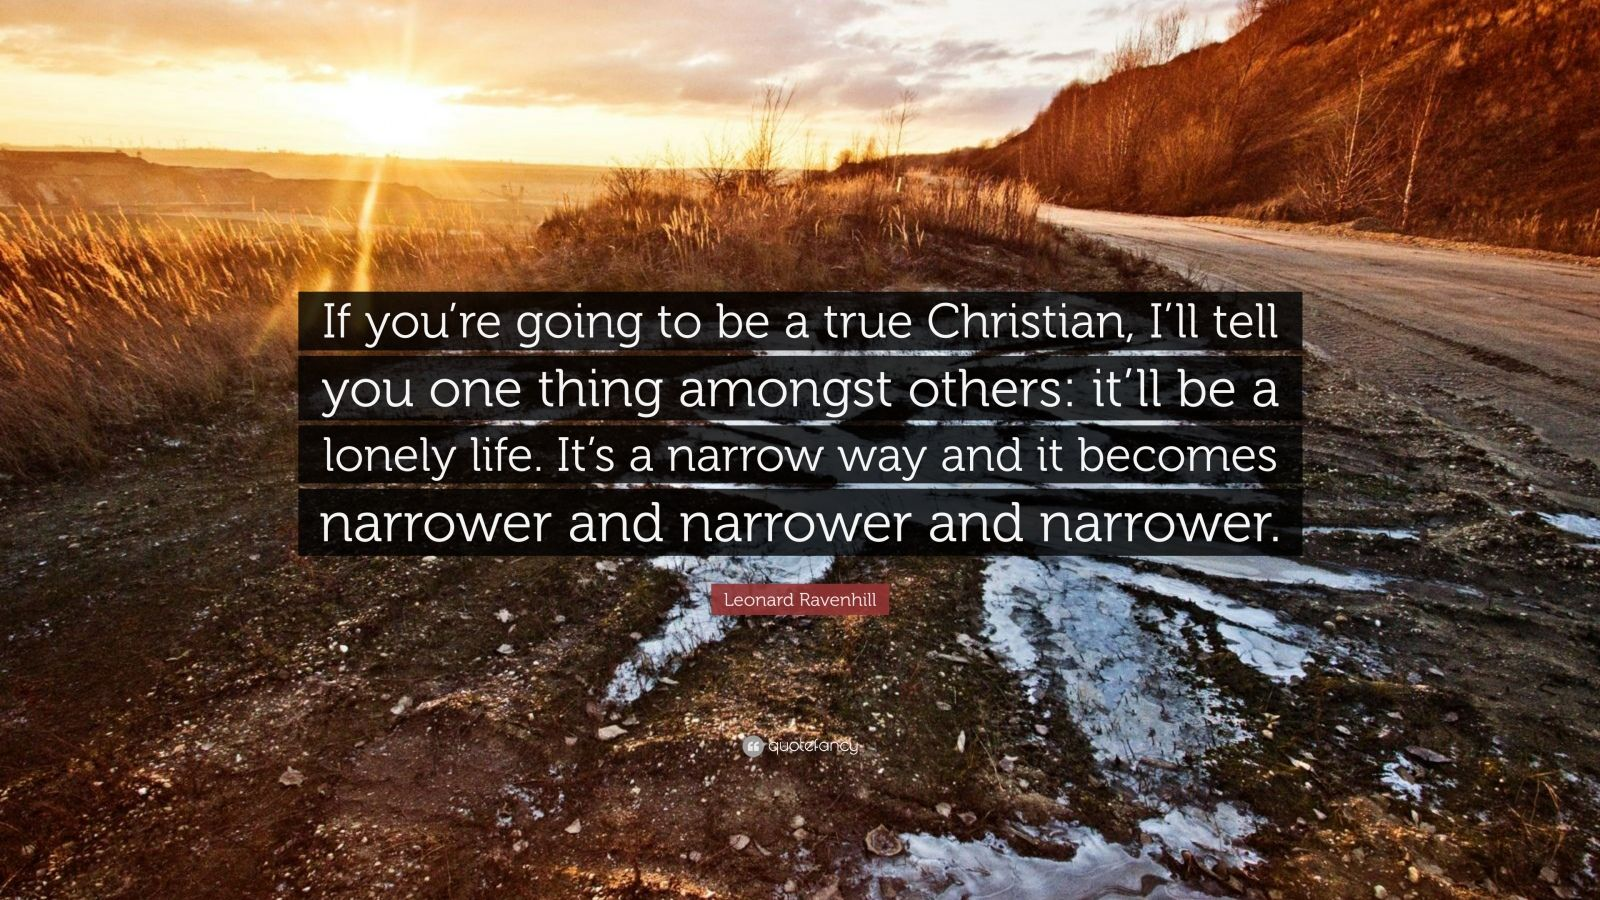 """Leonard Ravenhill Quote: """"If you're going to be a true Christian, I'll tell you one thing amongst others: it'll be a lonely life. It's a narrow way and it becomes narrower and narrower and narrower."""""""